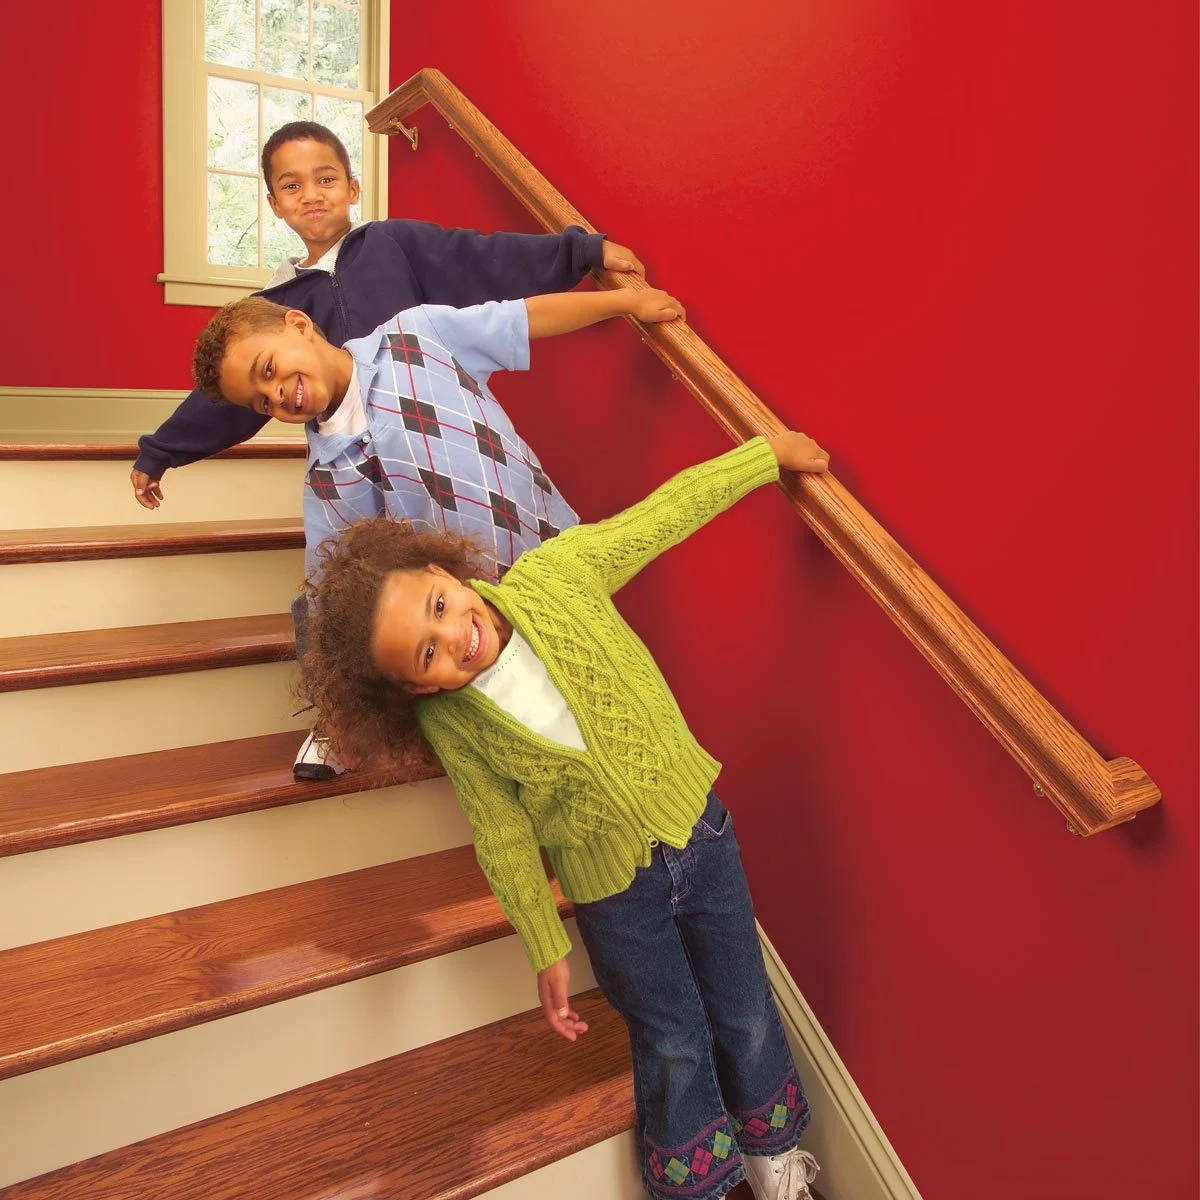 Install A New Stair Handrail | Wall To Floor Handrail | Glass | Paint Colors | Staircase | Wrought Iron | Concrete